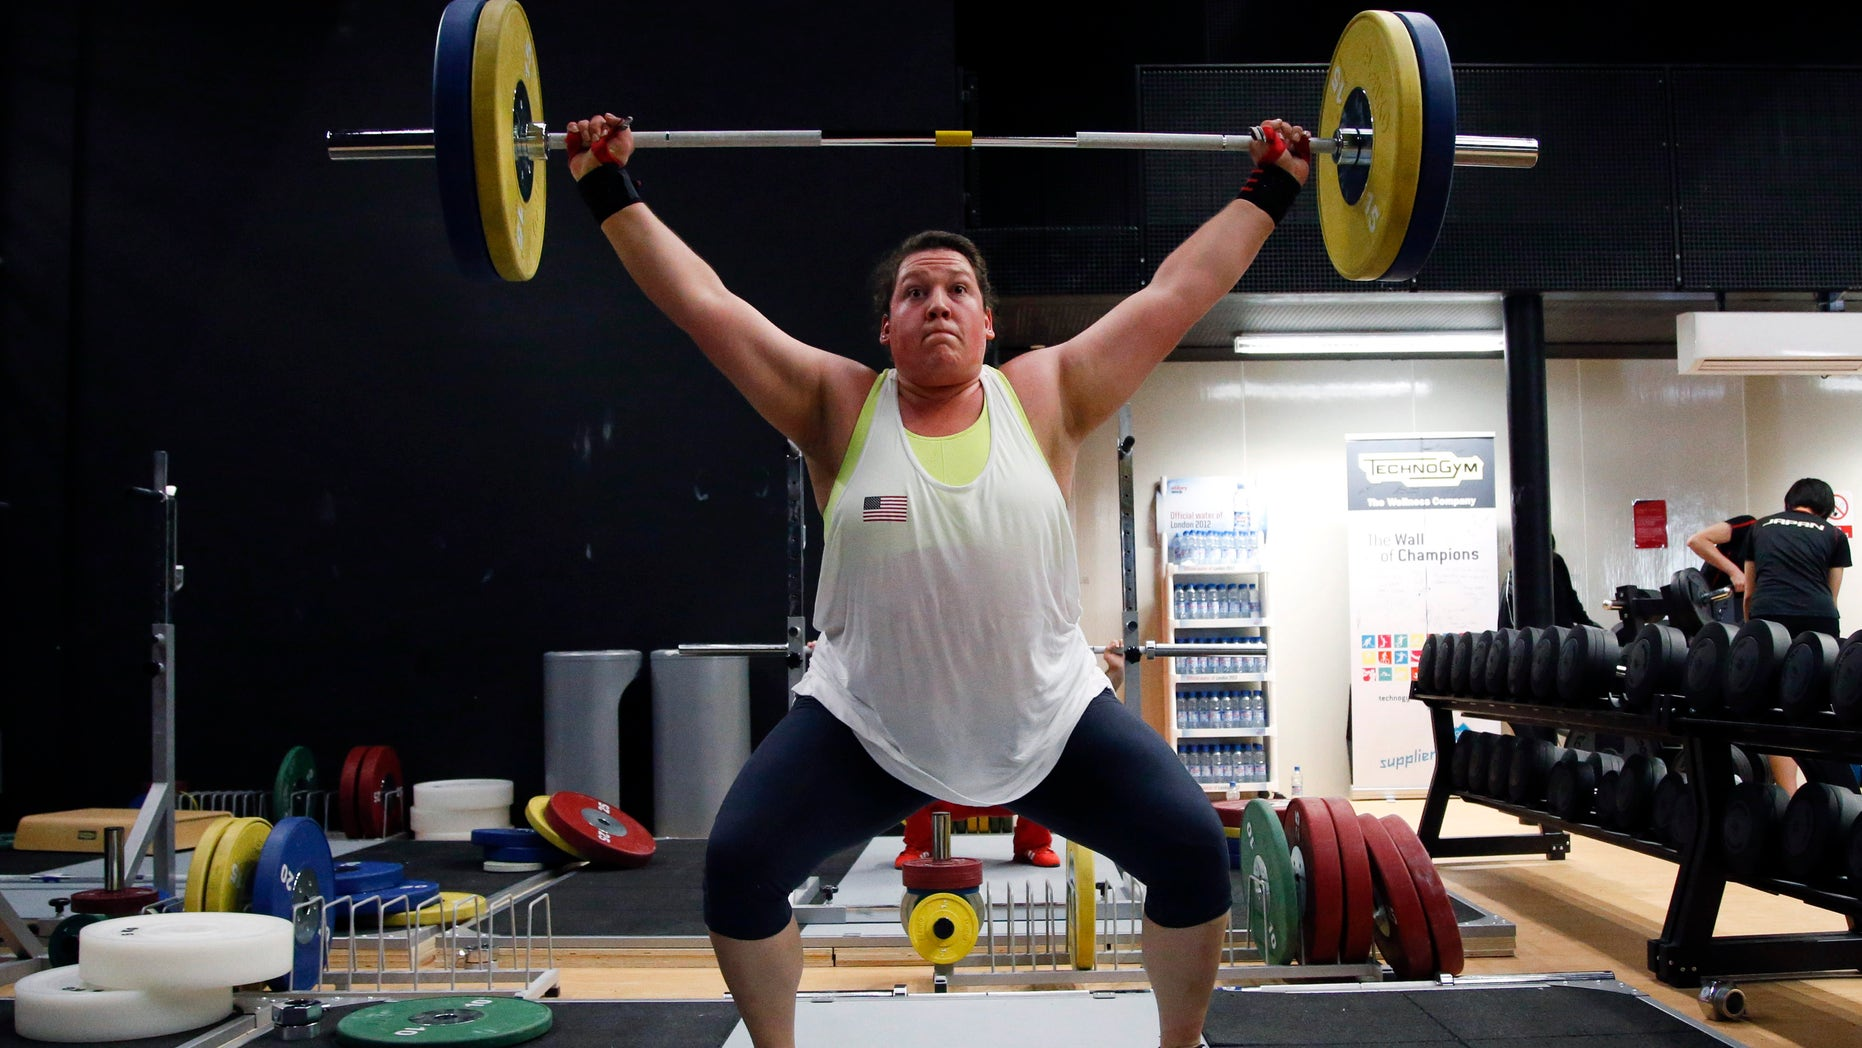 United States weightlifter Sarah Robles trains at the Athletes' Village in the Olympic Park during the 2012 Summer Olympics, London, Friday, Aug. 3, 2012. (AP Photo/Jae C. Hong)